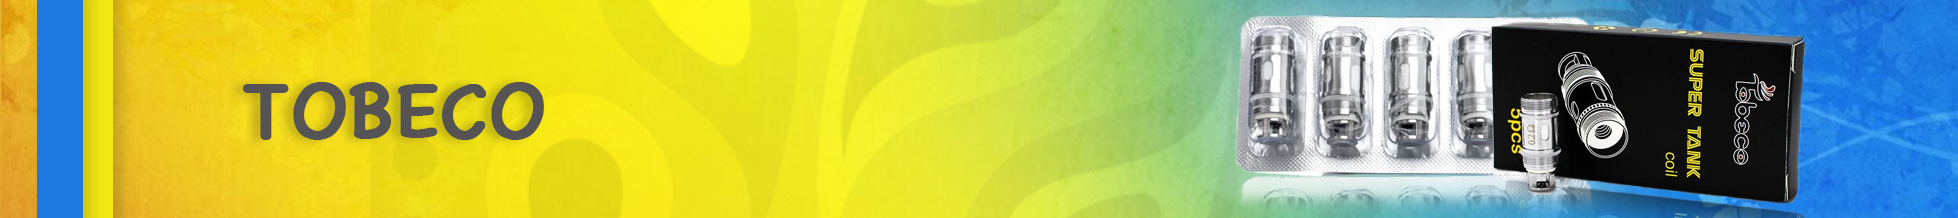 tobeco-category-banner.png